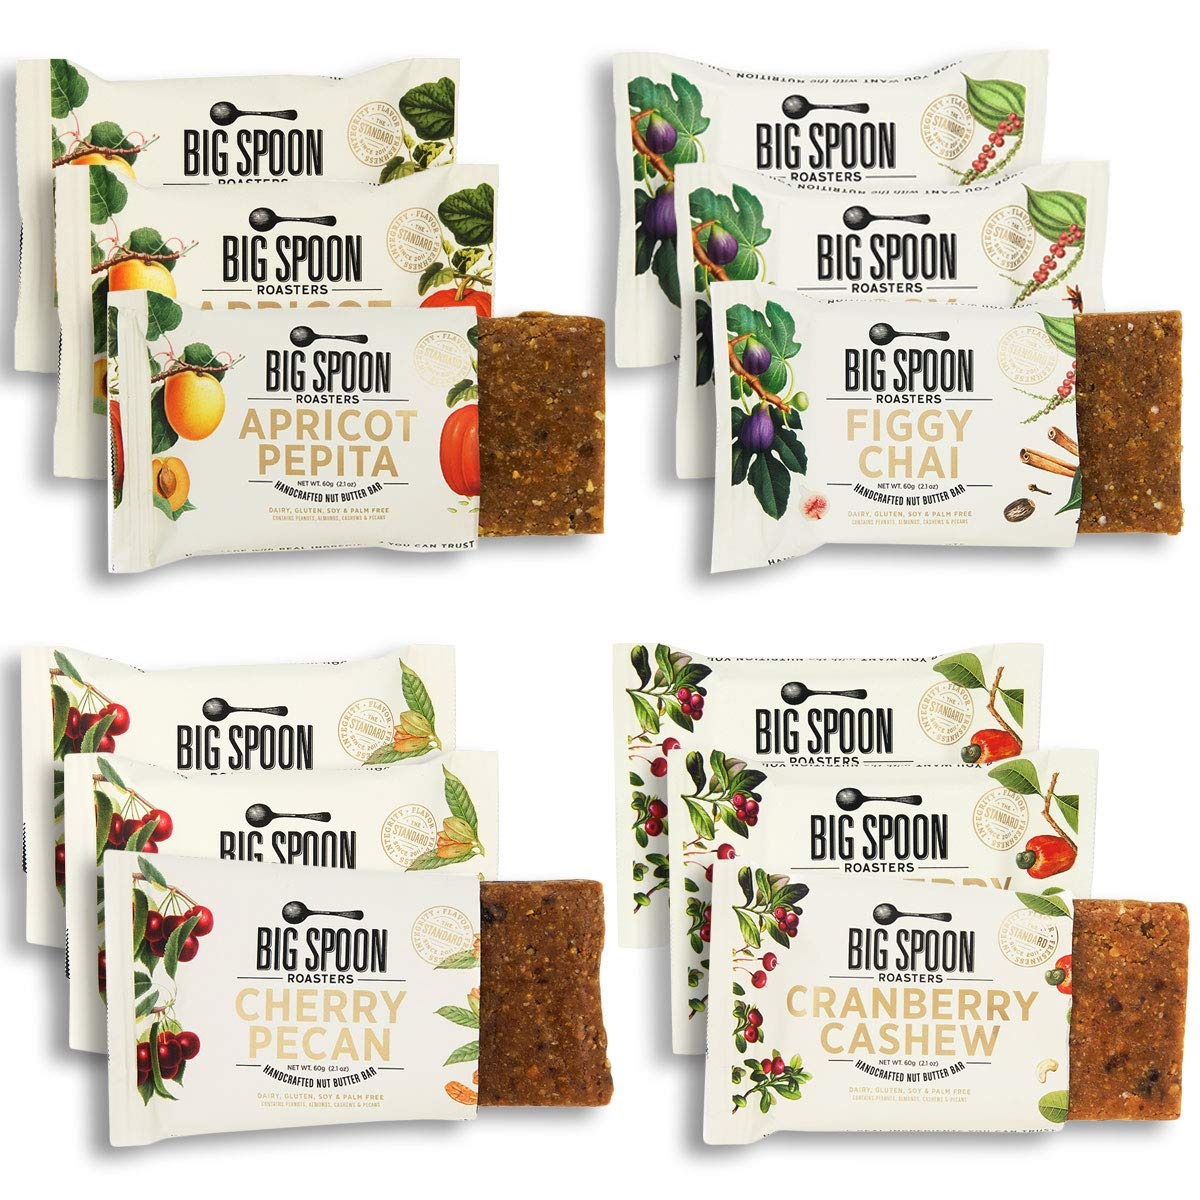 Big Spoon Roasters Nut Butter Bars Variety Pack - Cherry Pecan, Apricot Pepita, Cranberry Cashew & Figgy Chai - High Protein Bars Variety Pack with Non-GMO Pea Protein - 12-Count (3 of Each Flavor)